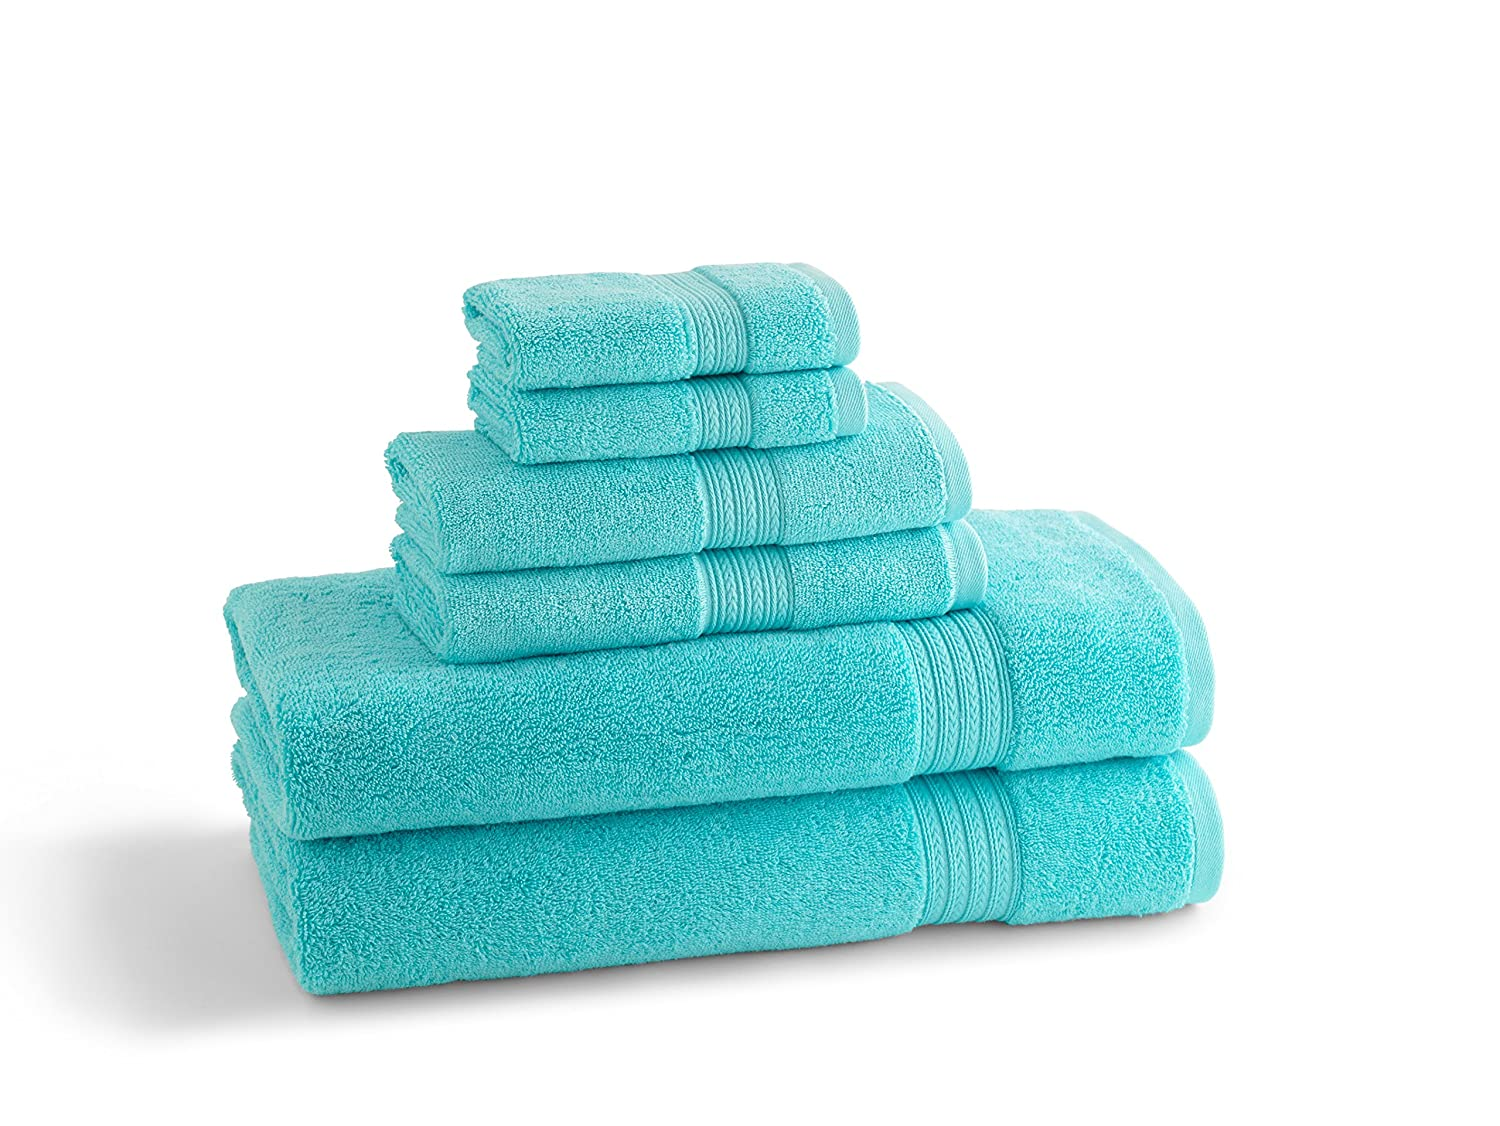 Kassatex Kassadesign Brights Collection Bath Towel, Caribbean Blue велосипед stels joy 12 2014